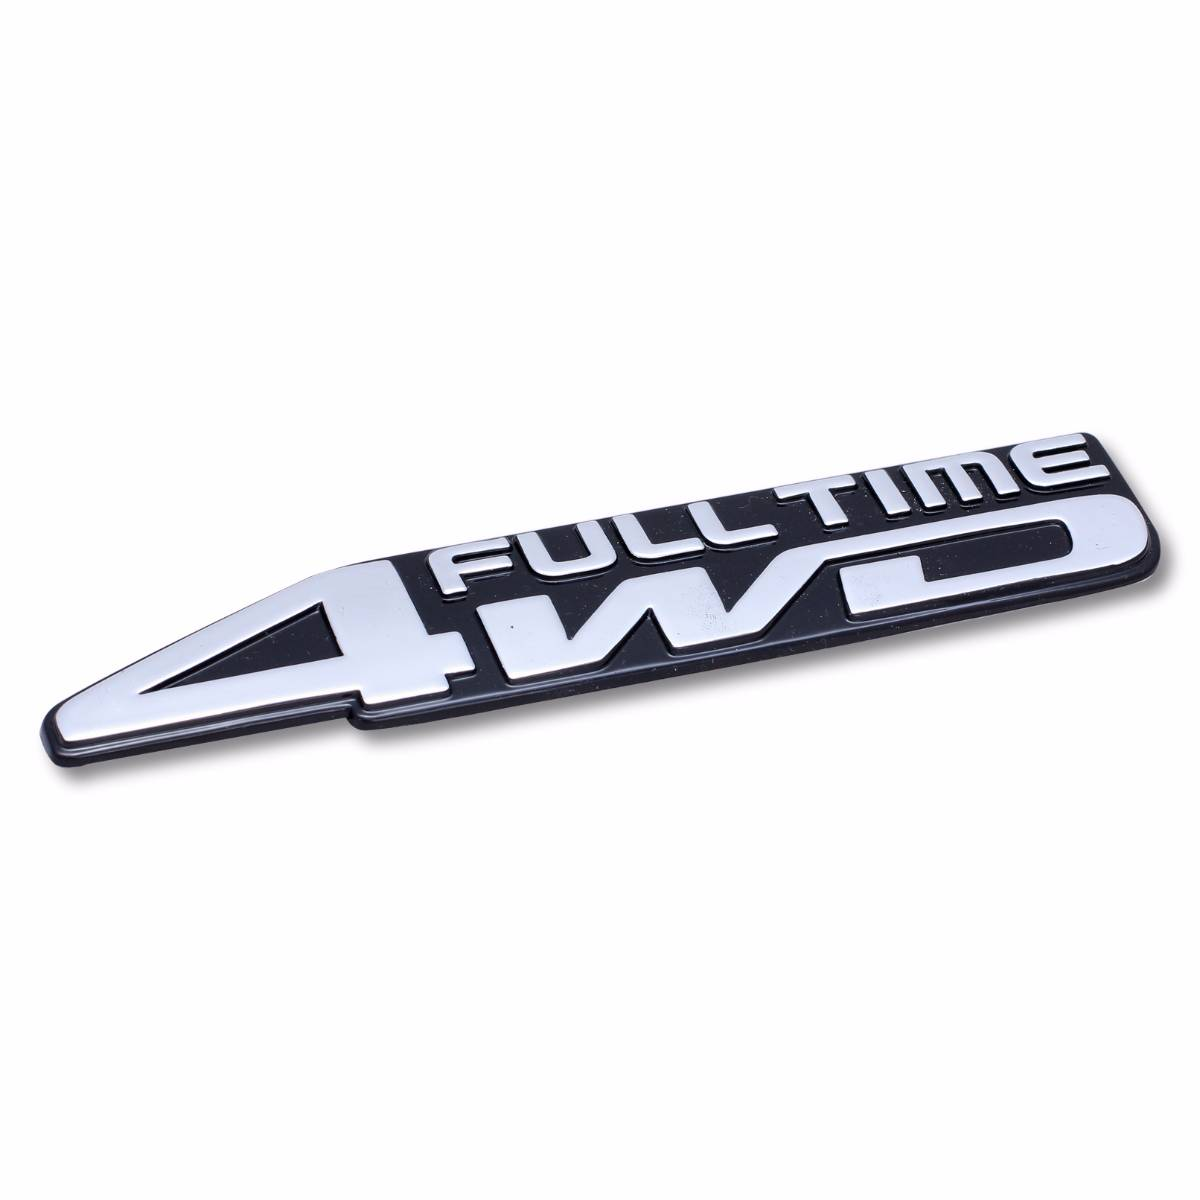 Emblem Logo Full Time 4wd